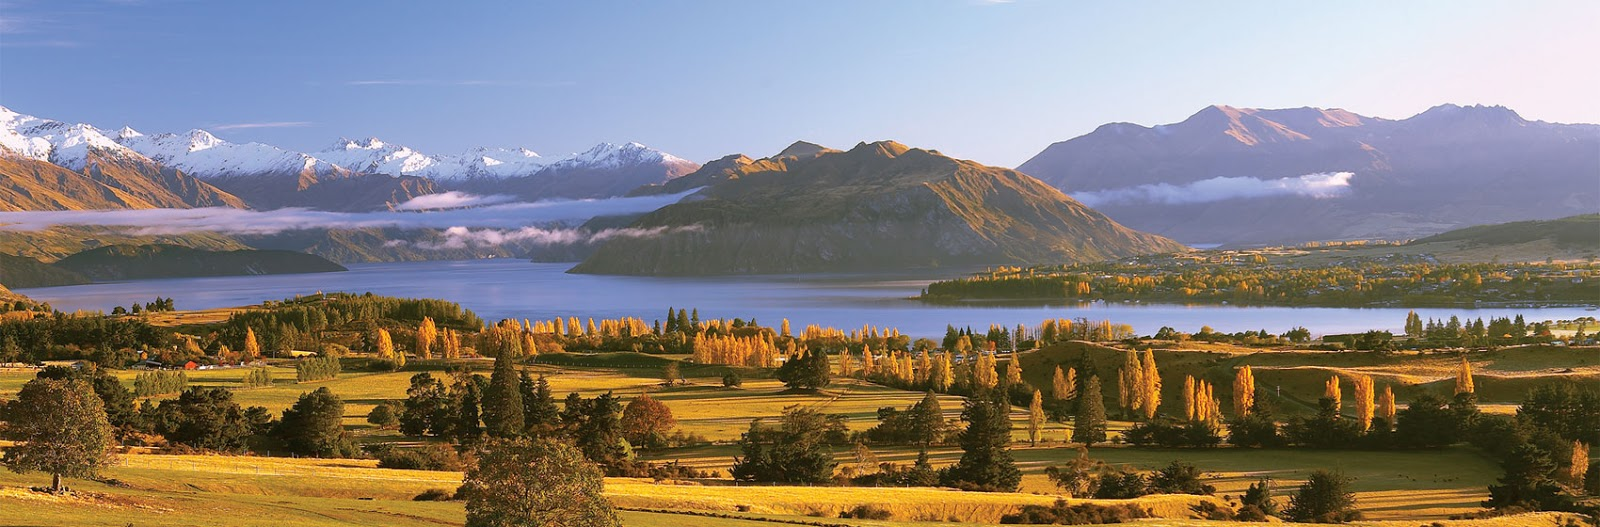 Wanaka New Zealand  City pictures : Souvenirs From Wanaka New Zealand | HD Walls | Find Wallpapers